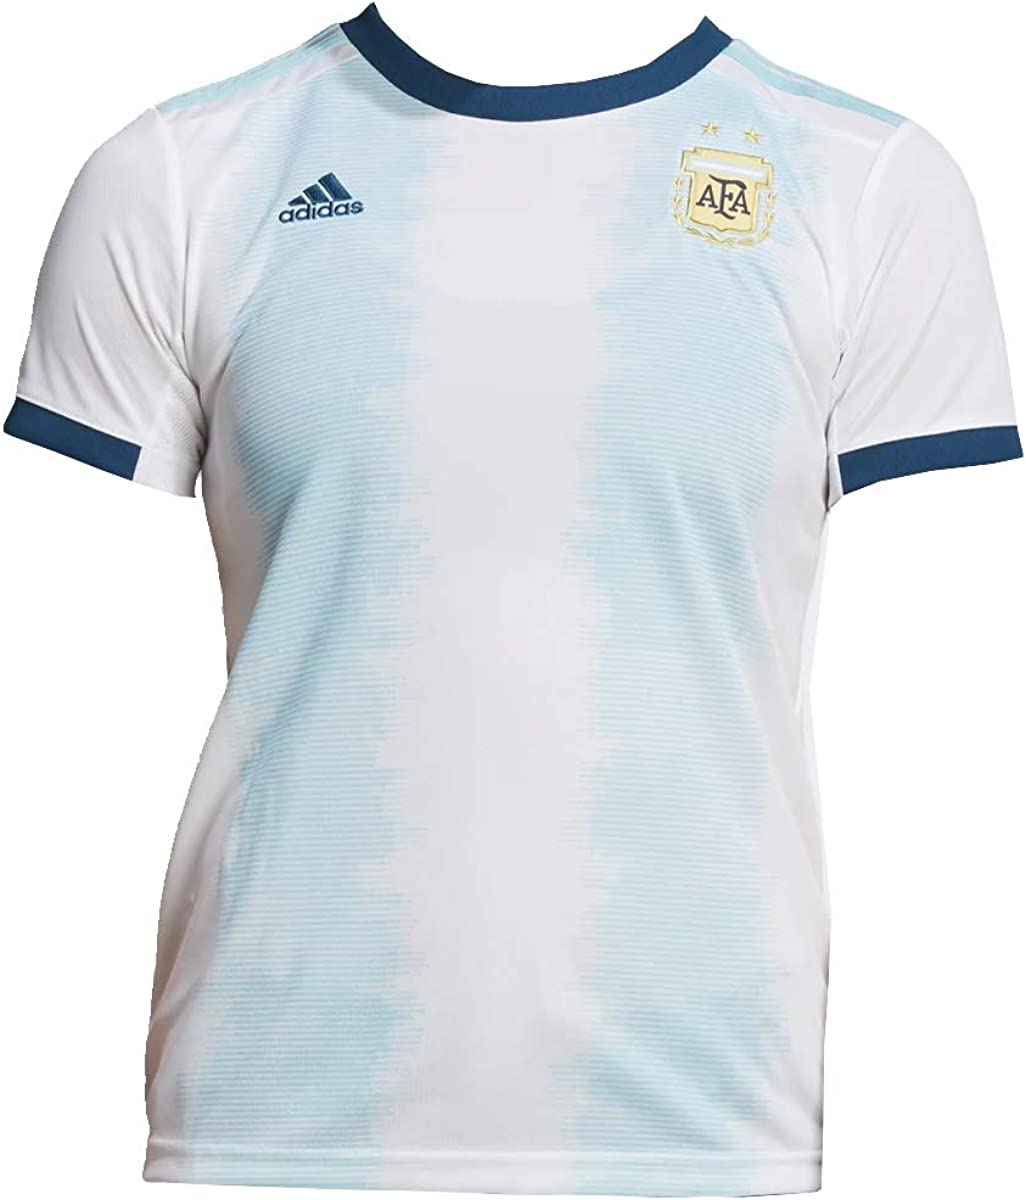 Top 9 Adidas Argentina Home Jersey Womens